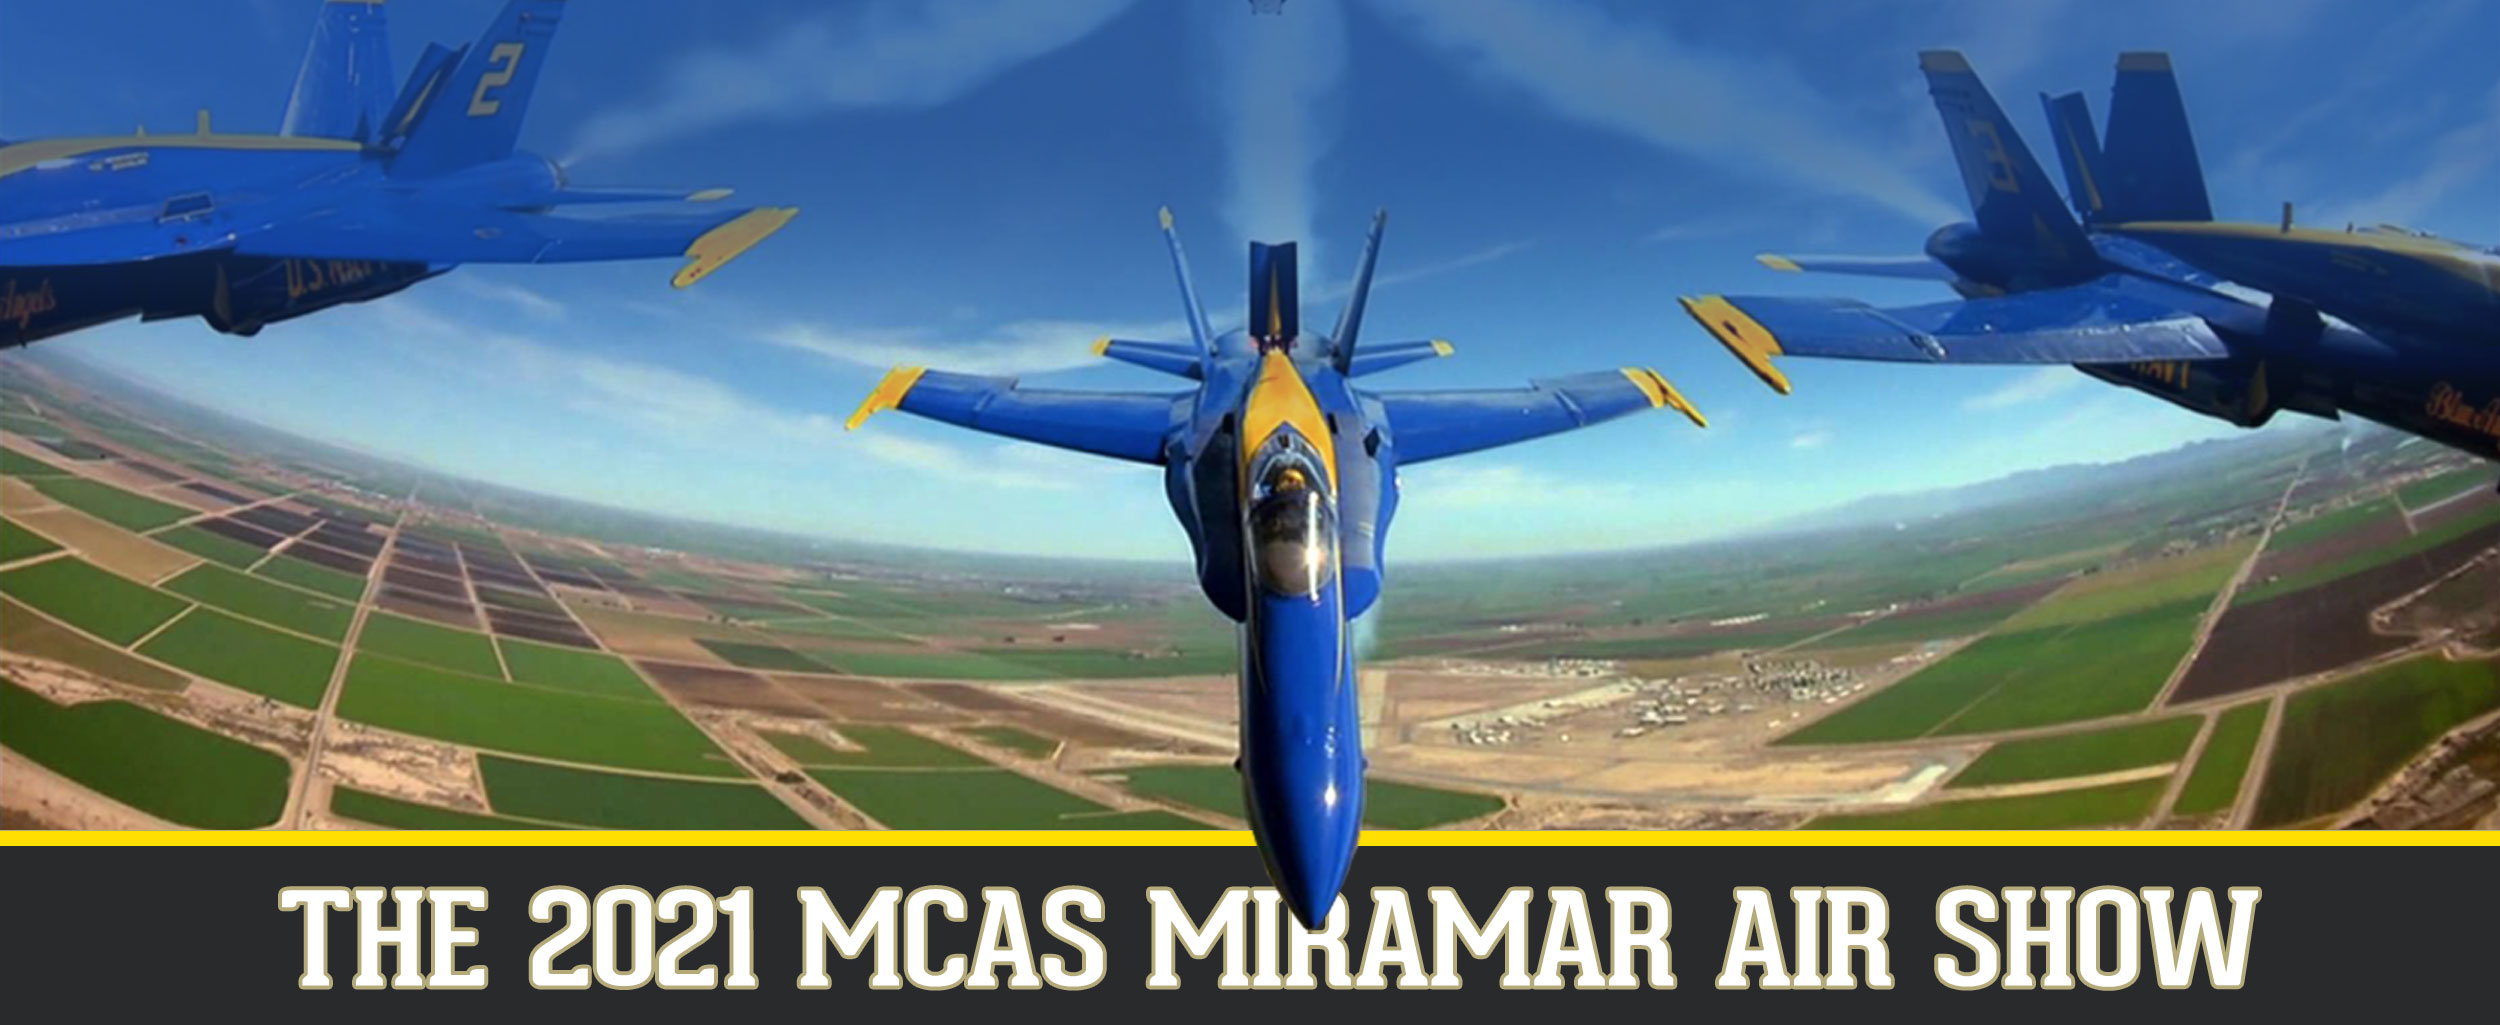 Welcome to the MCAS Miramar Air Show | The World's Largest